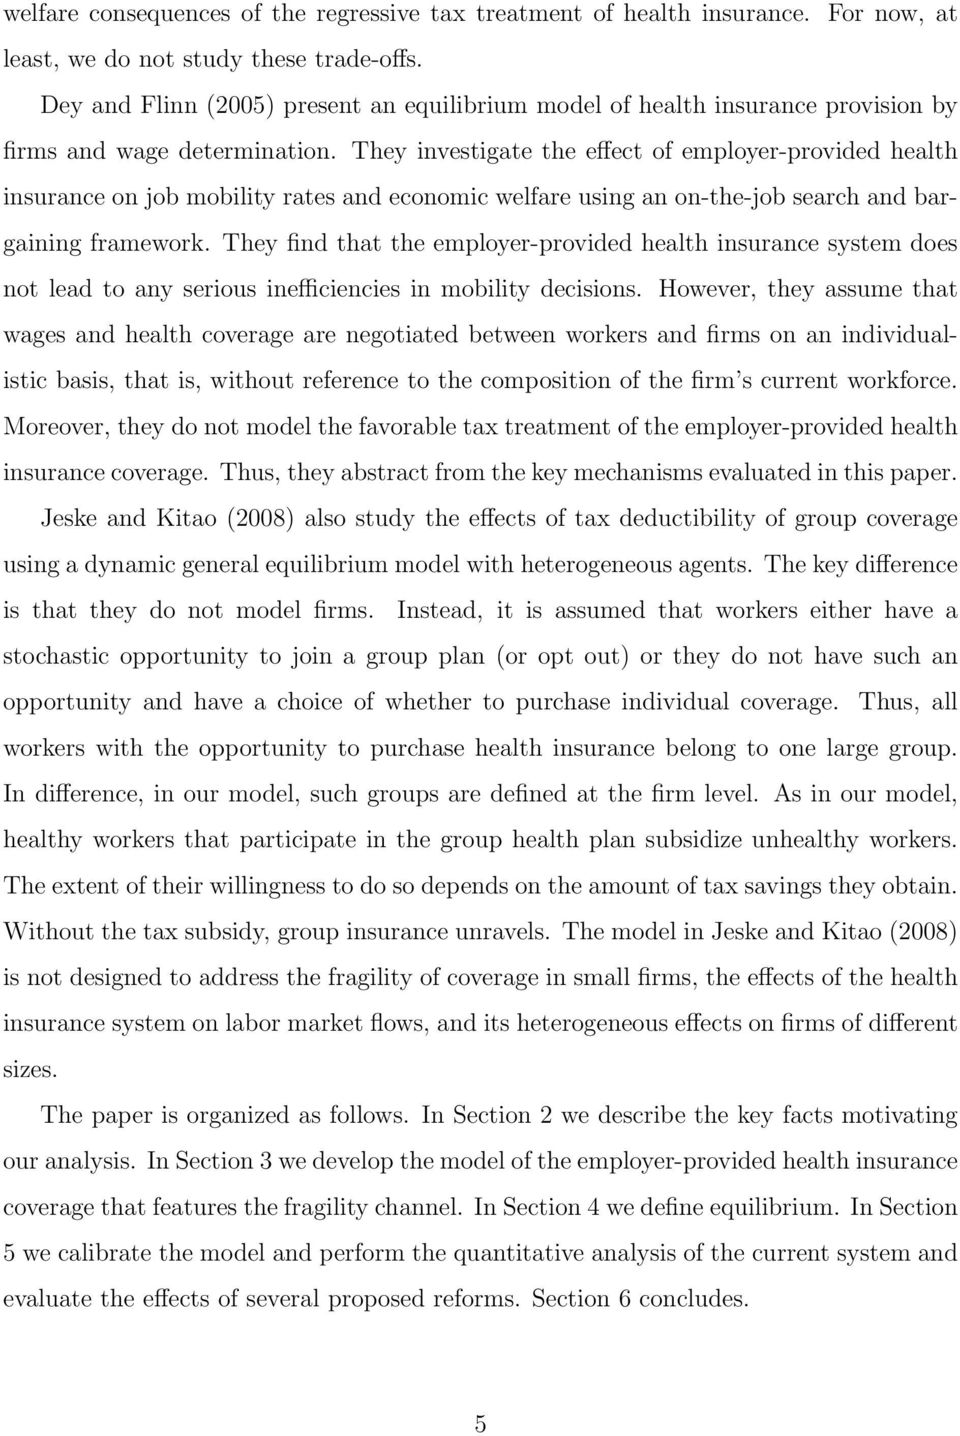 They investigate the effect of employer-provided health insurance on job mobility rates and economic welfare using an on-the-job search and bargaining framework.